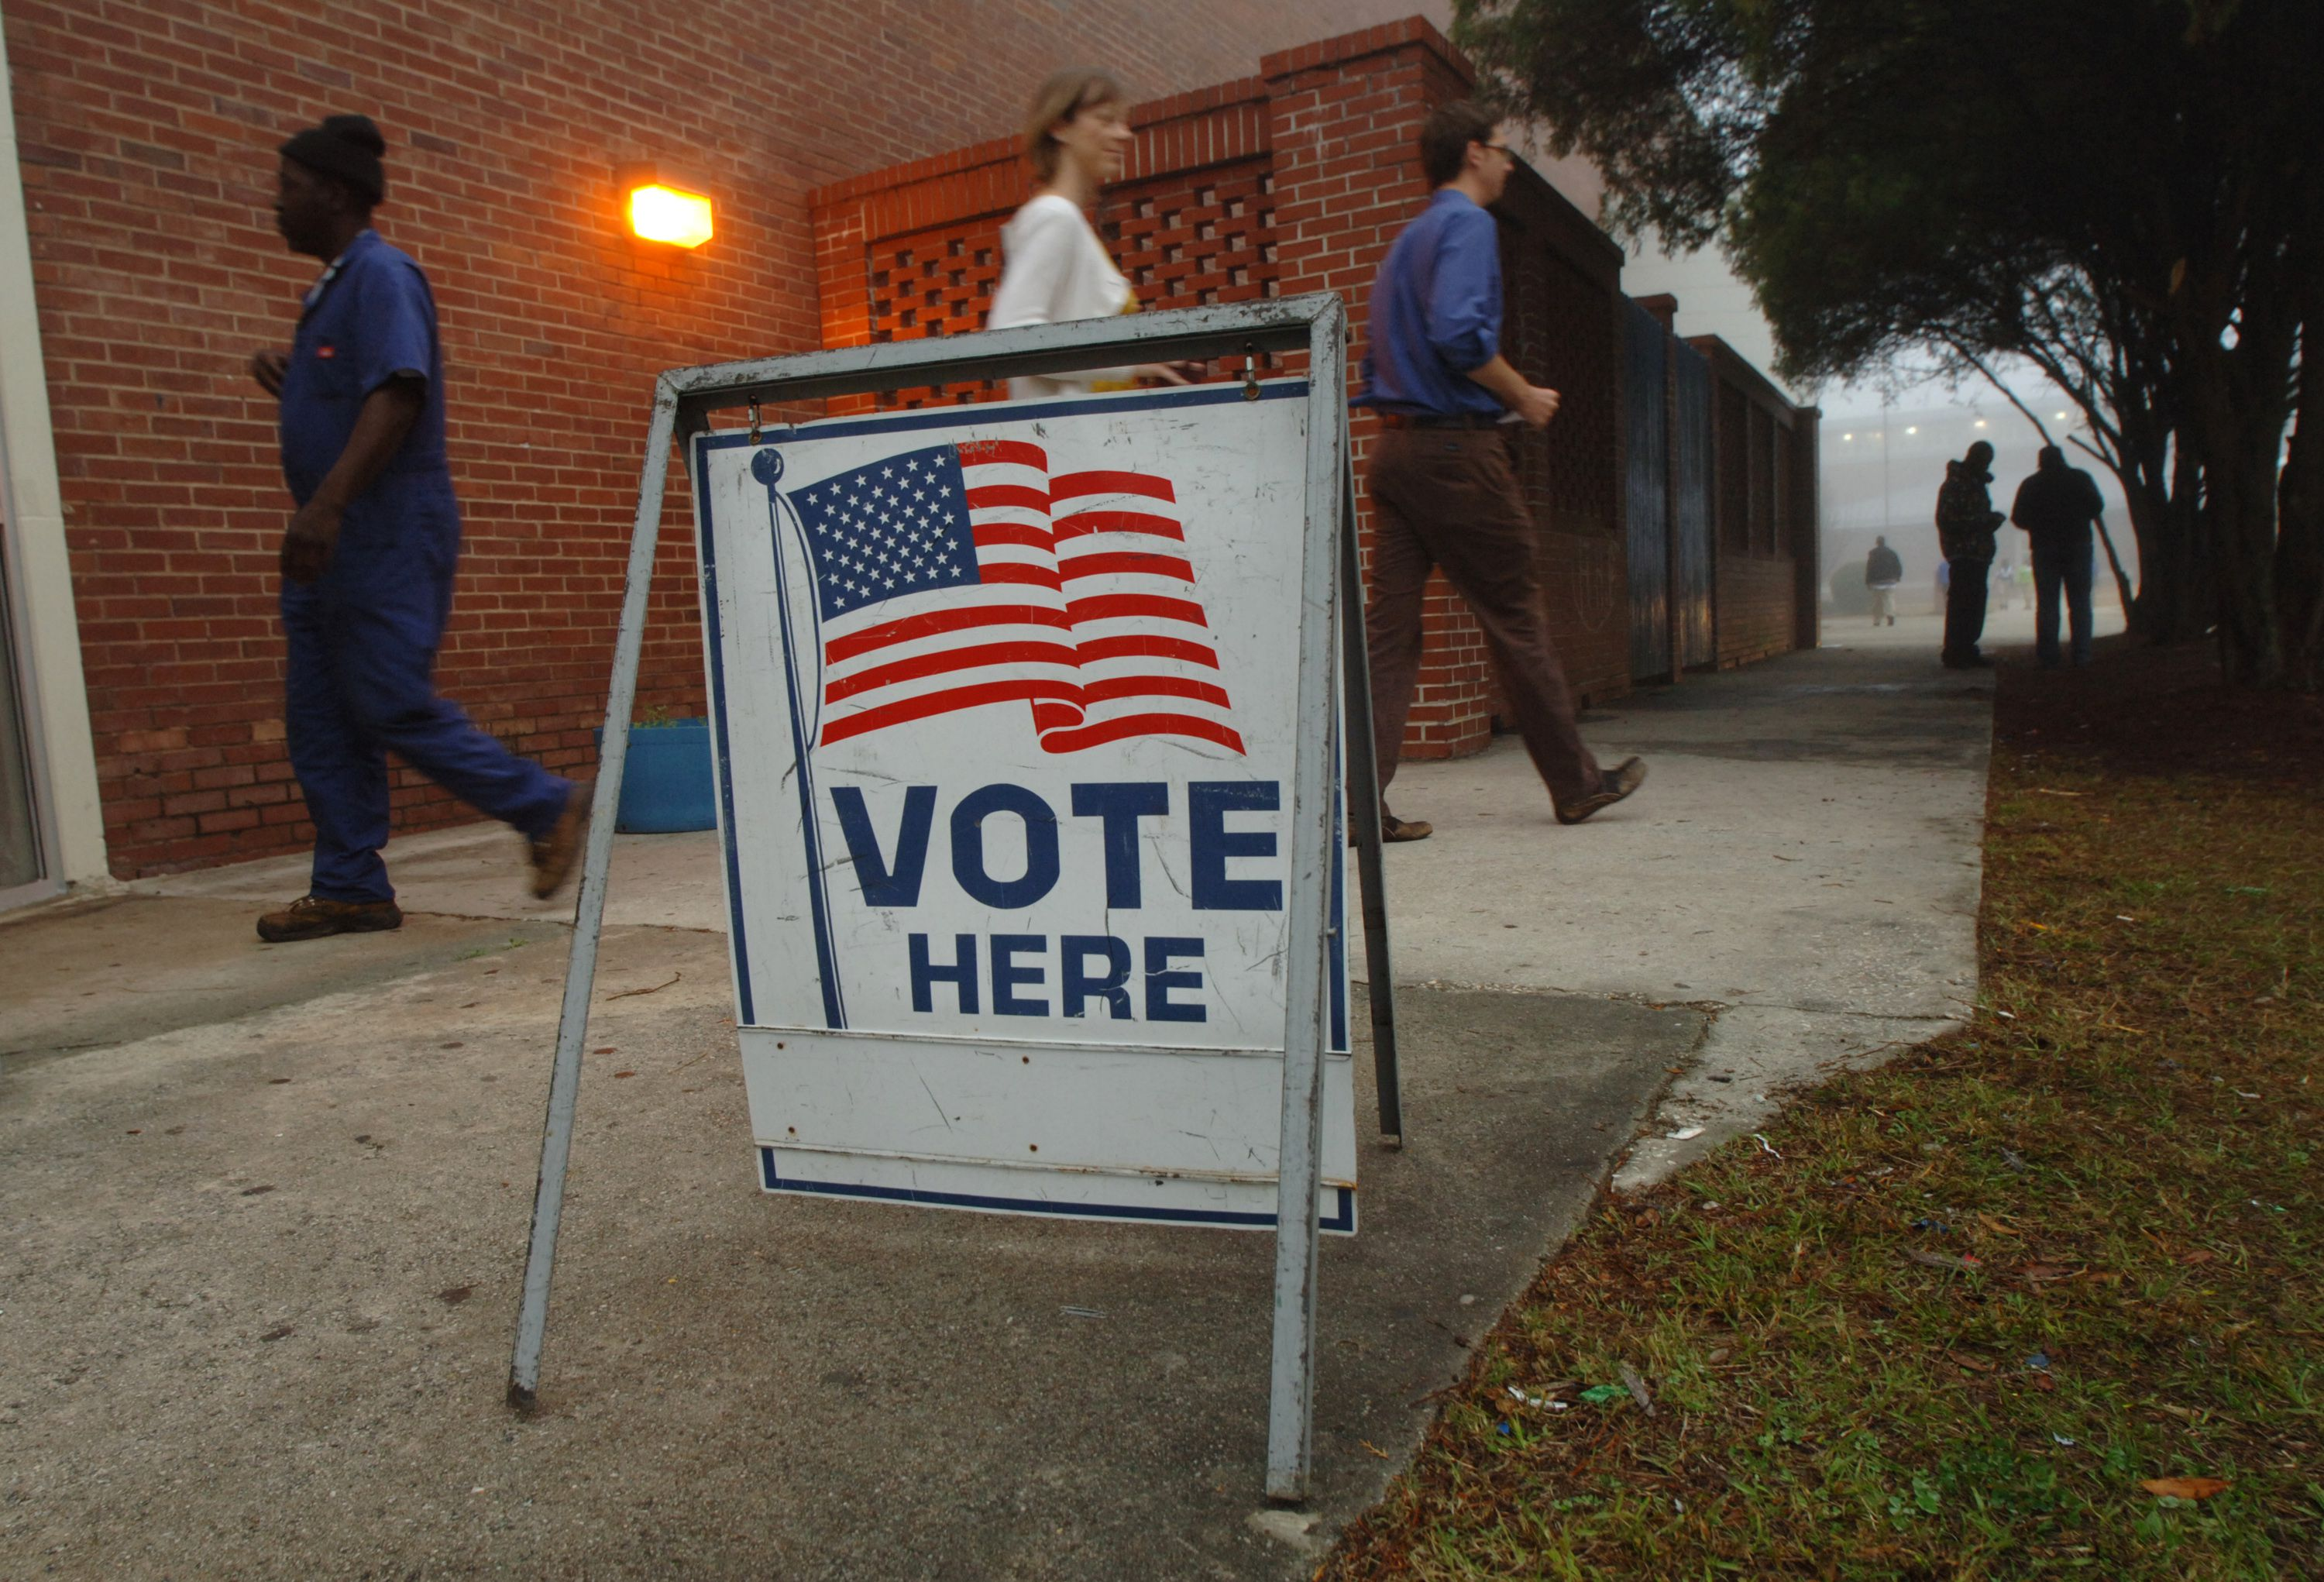 Marijuana legalization, daylight savings and other notable measures passed in the midterm elections - Axios